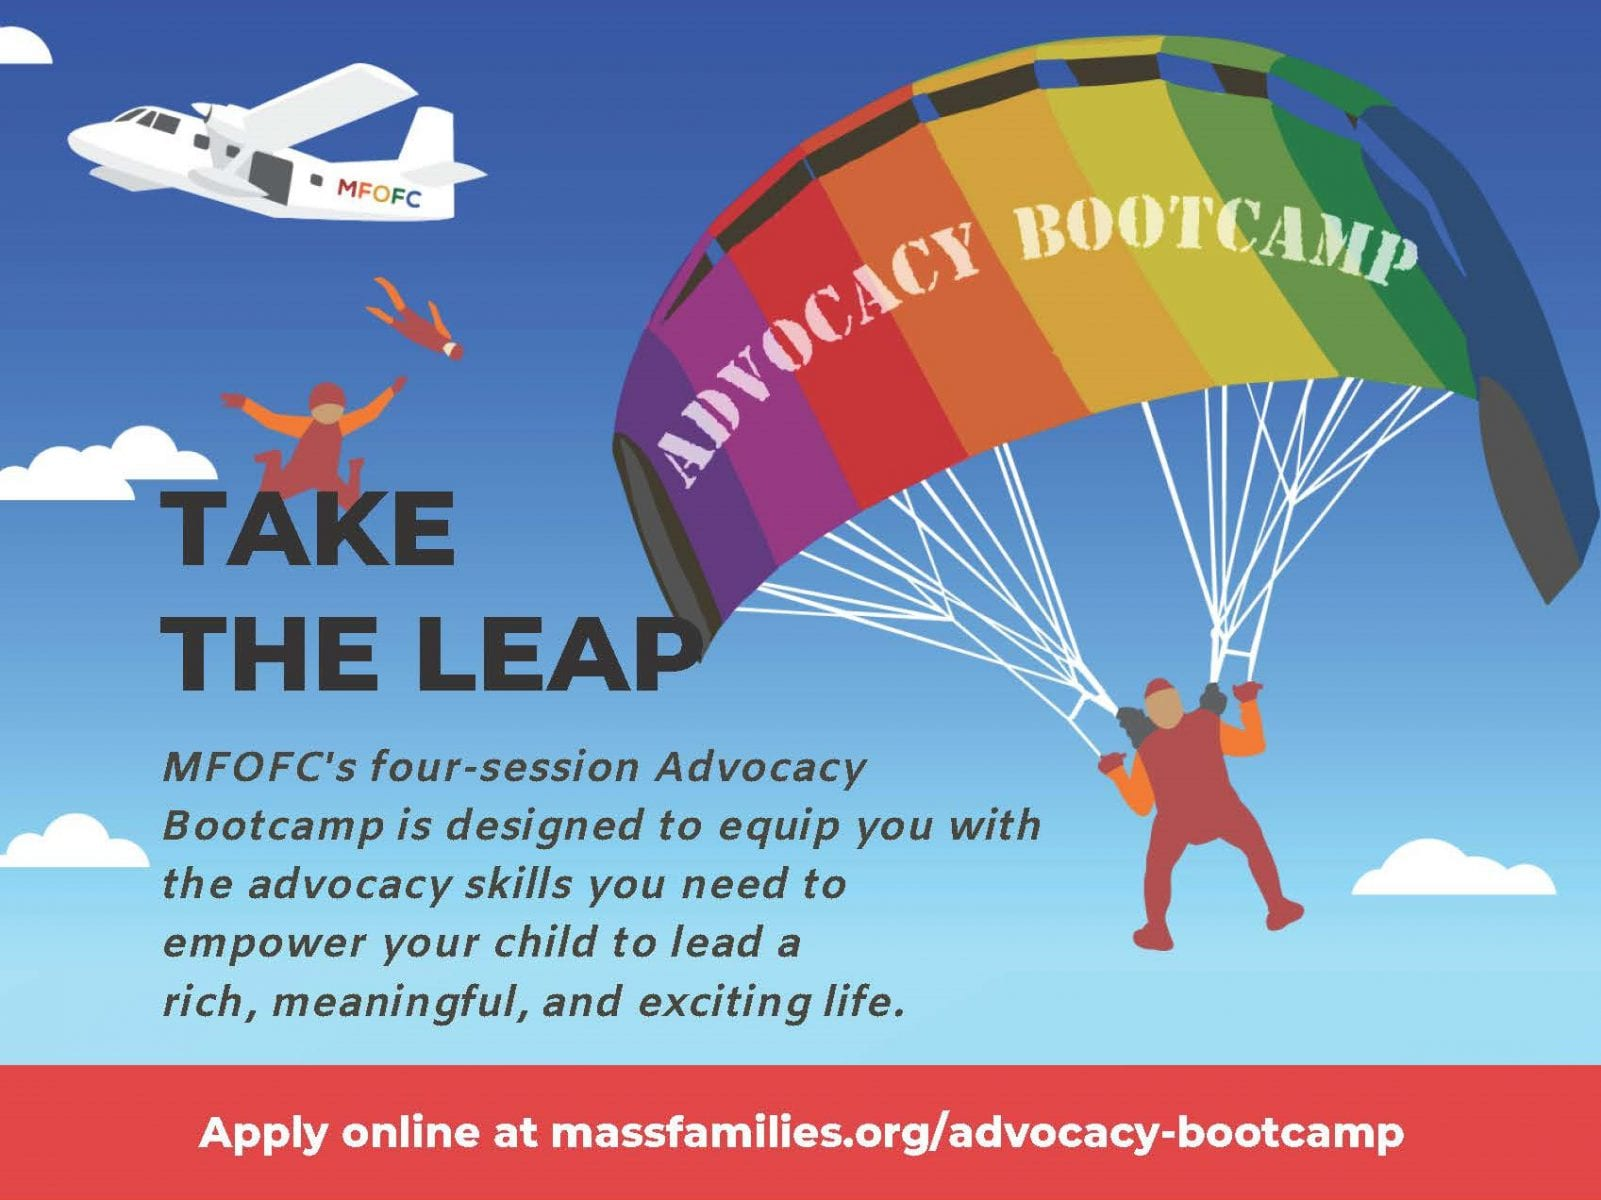 TAKE THE LEAP MFOFC's four-session Advocacy Bootcamp is designed to equip you with the advocacy skills you need to empower your child to lead a rich, meaningful, and exciting life. Apply online at massfamilies.org/advocacy-bootcamp/